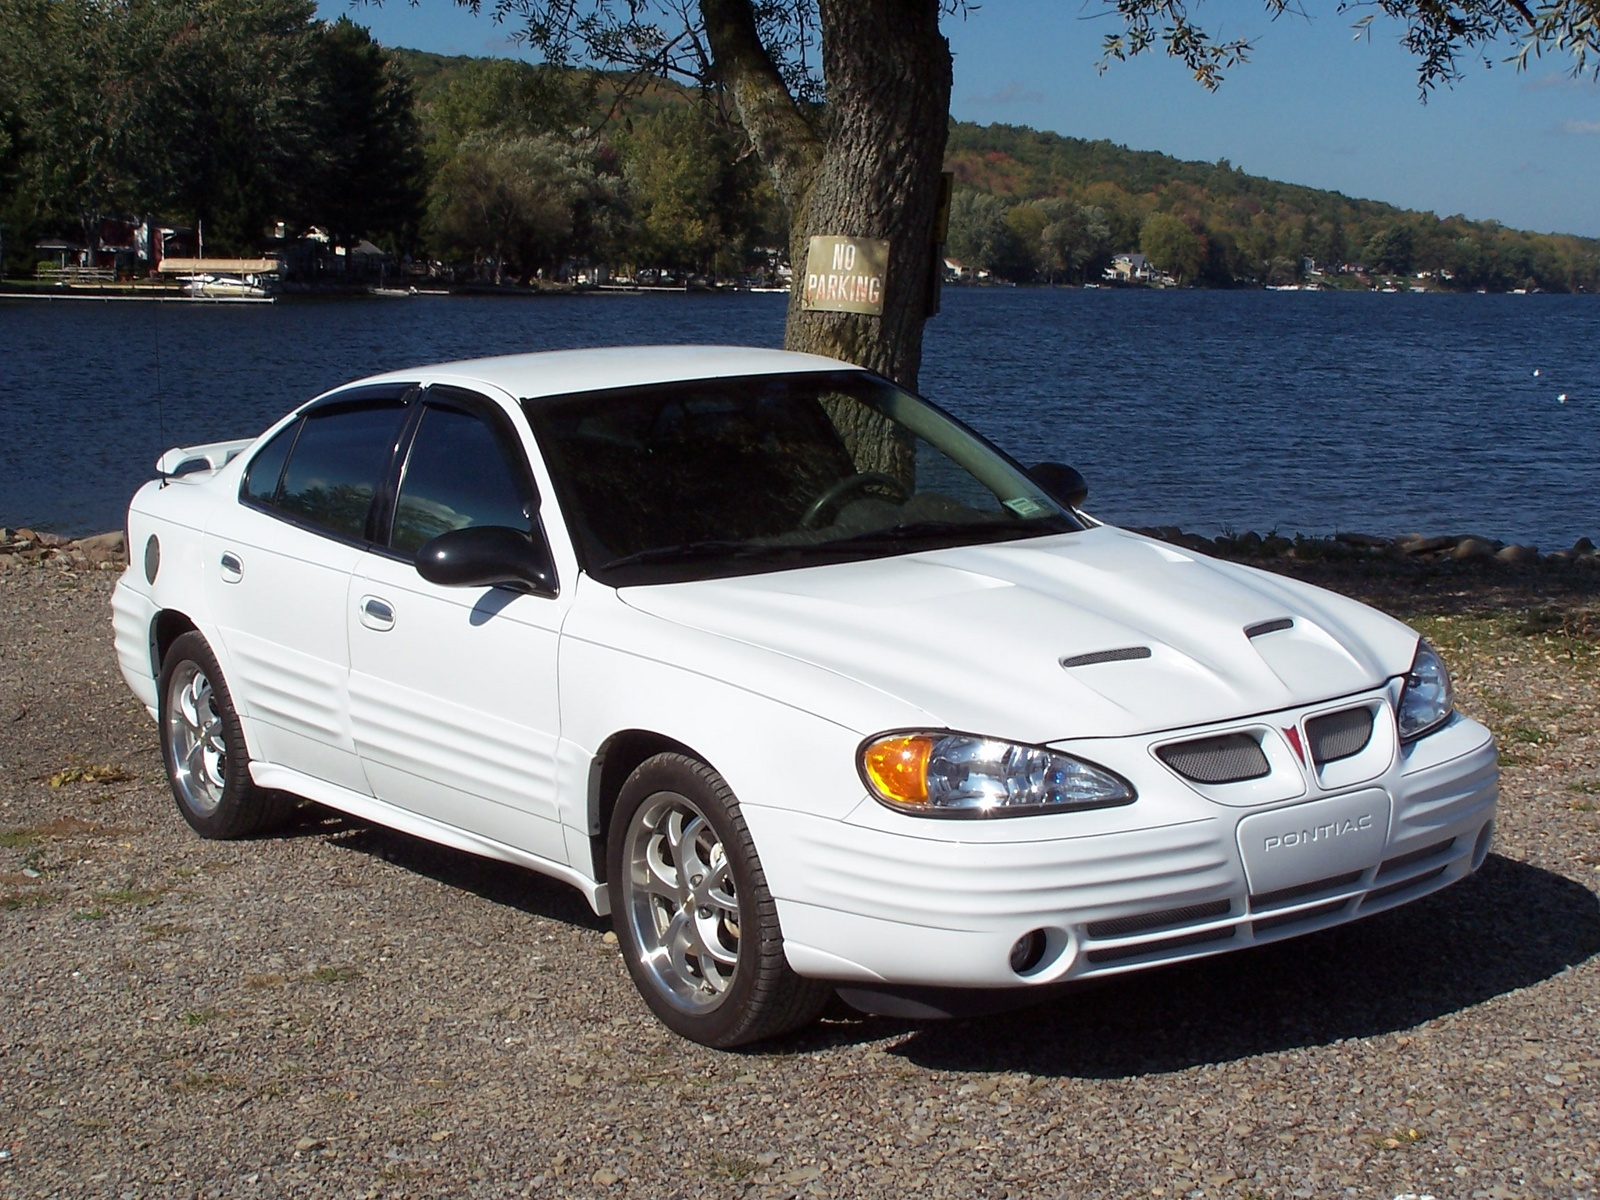 2002 pontiac grand am pictures cargurus. Black Bedroom Furniture Sets. Home Design Ideas